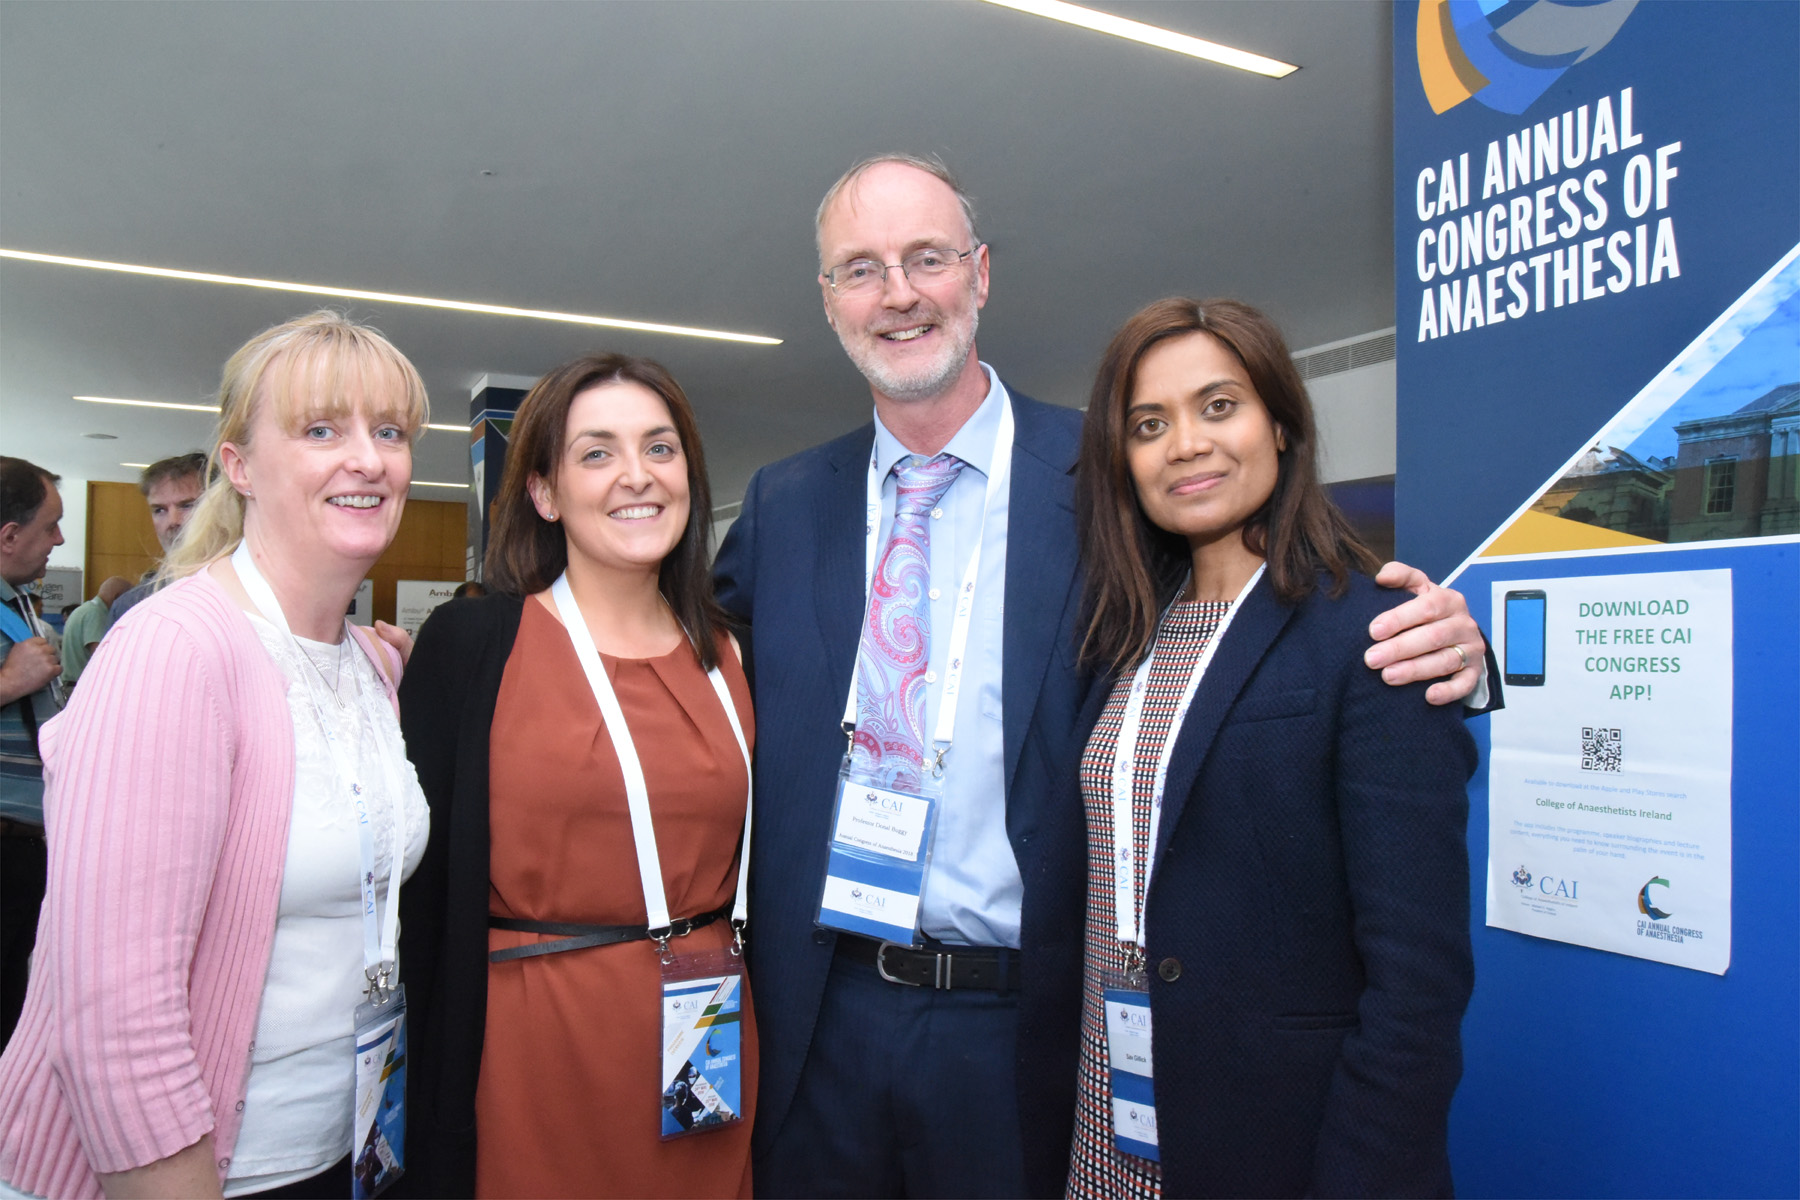 College of Anaesthetists of Ireland Annual Congress 2018 -Dr Triona Costin, Dr Aoife Malone, Professor Donal Buggy, Professional Development Committee Chairman, CAI and Dr Sav Gillick